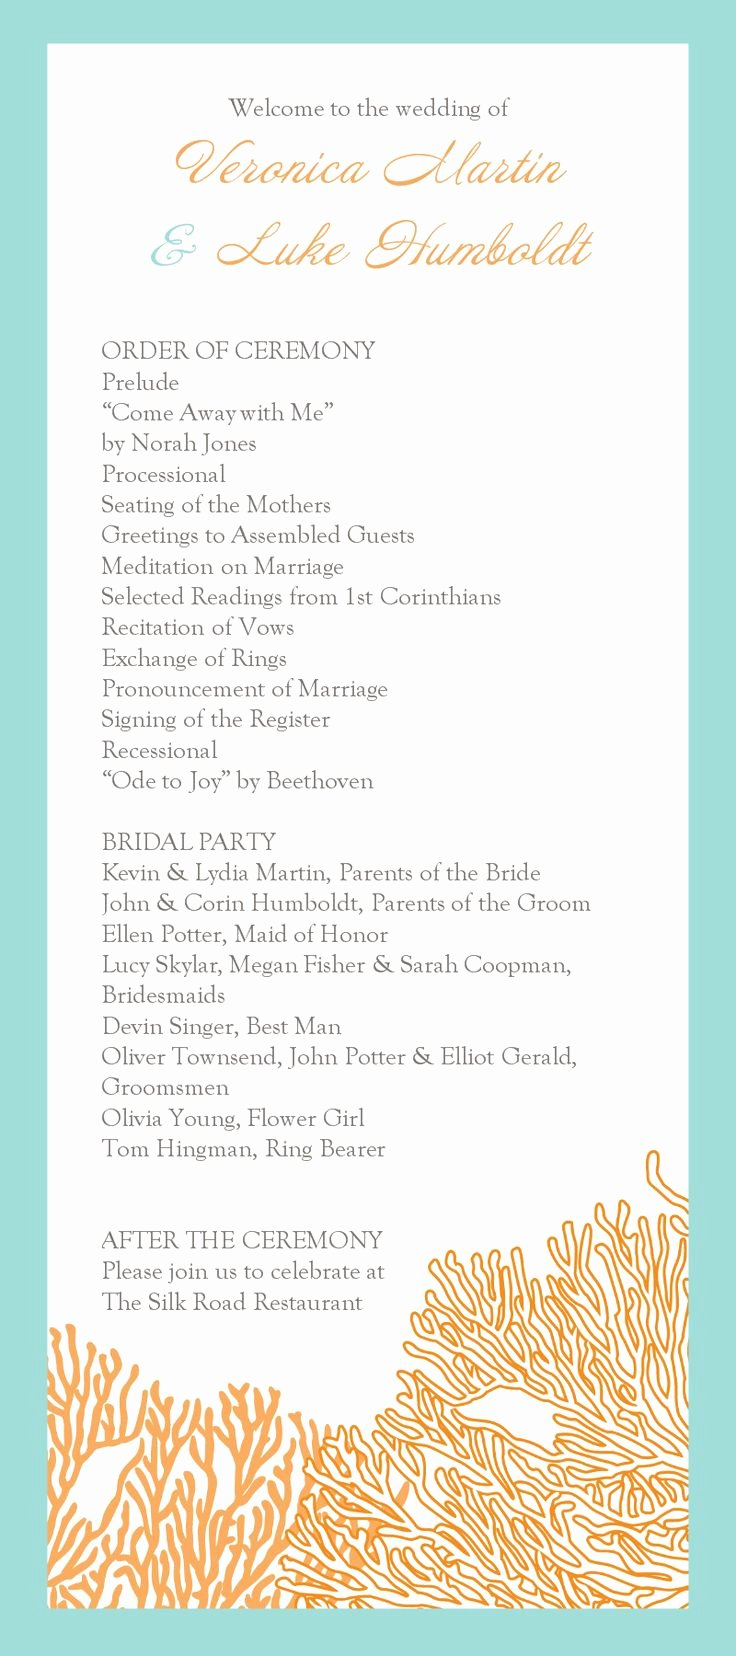 13 Best Images About Wedding Programs On Pinterest